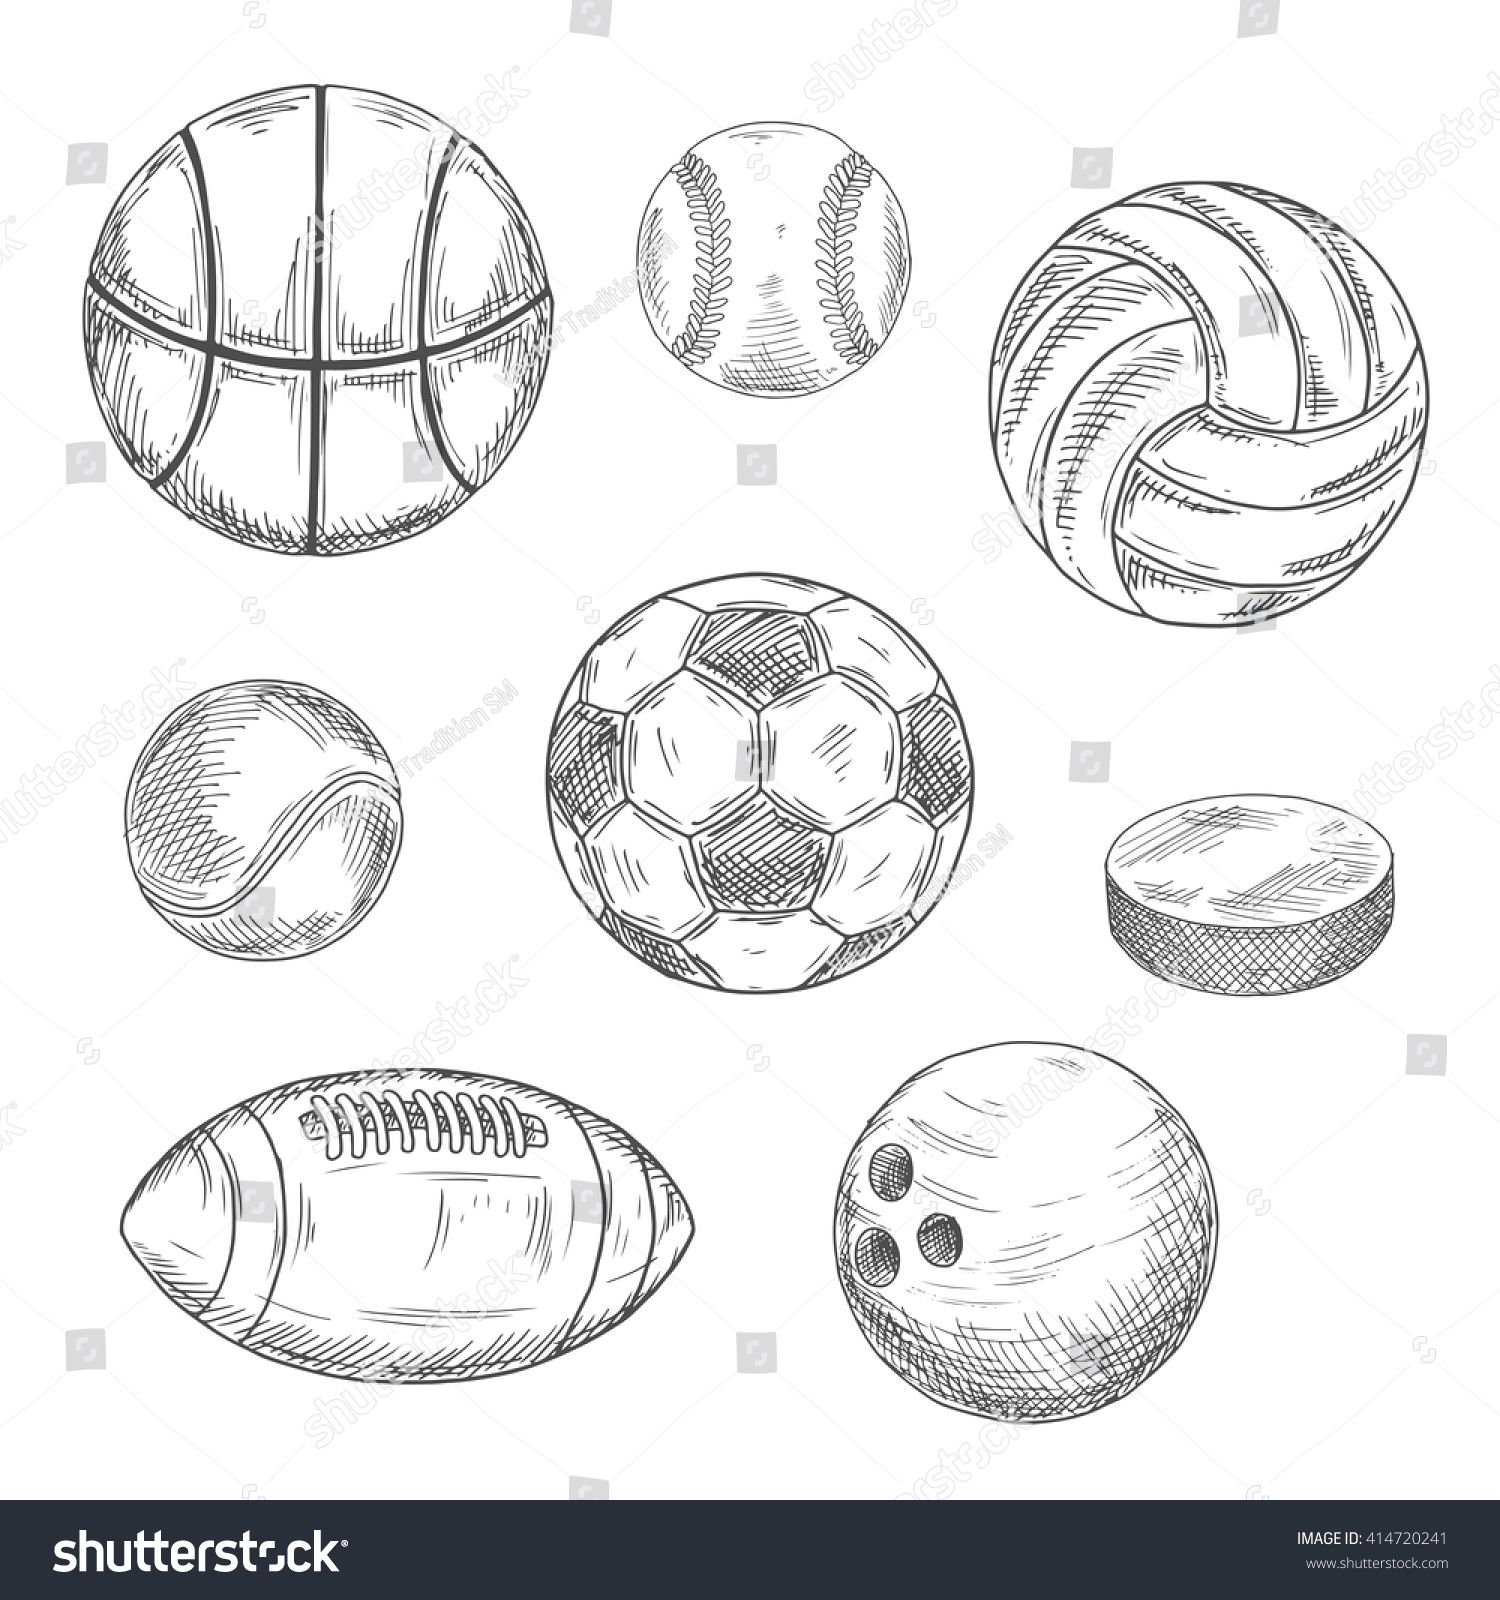 Sketched Balls For Soccer Or Football Baseball Basketball American Football Volleyball Tennis Bowling And Puck For Sketch Icon Creative Icon Hockey Puck